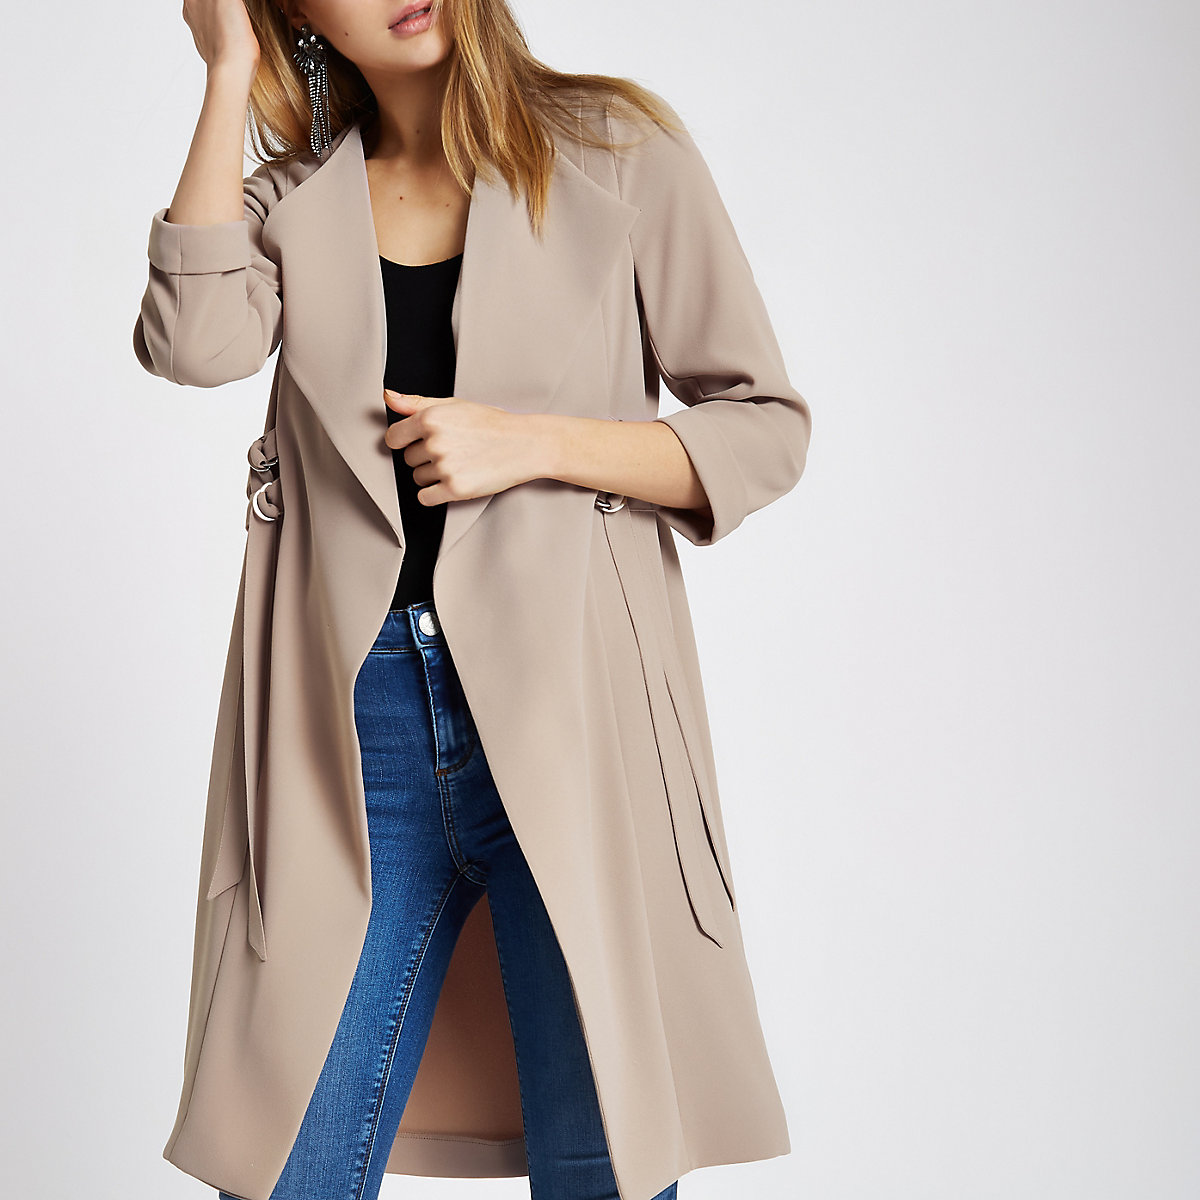 SL1433 Ex Chainstore Beige D Ring Strap Sides Duster Coat x10